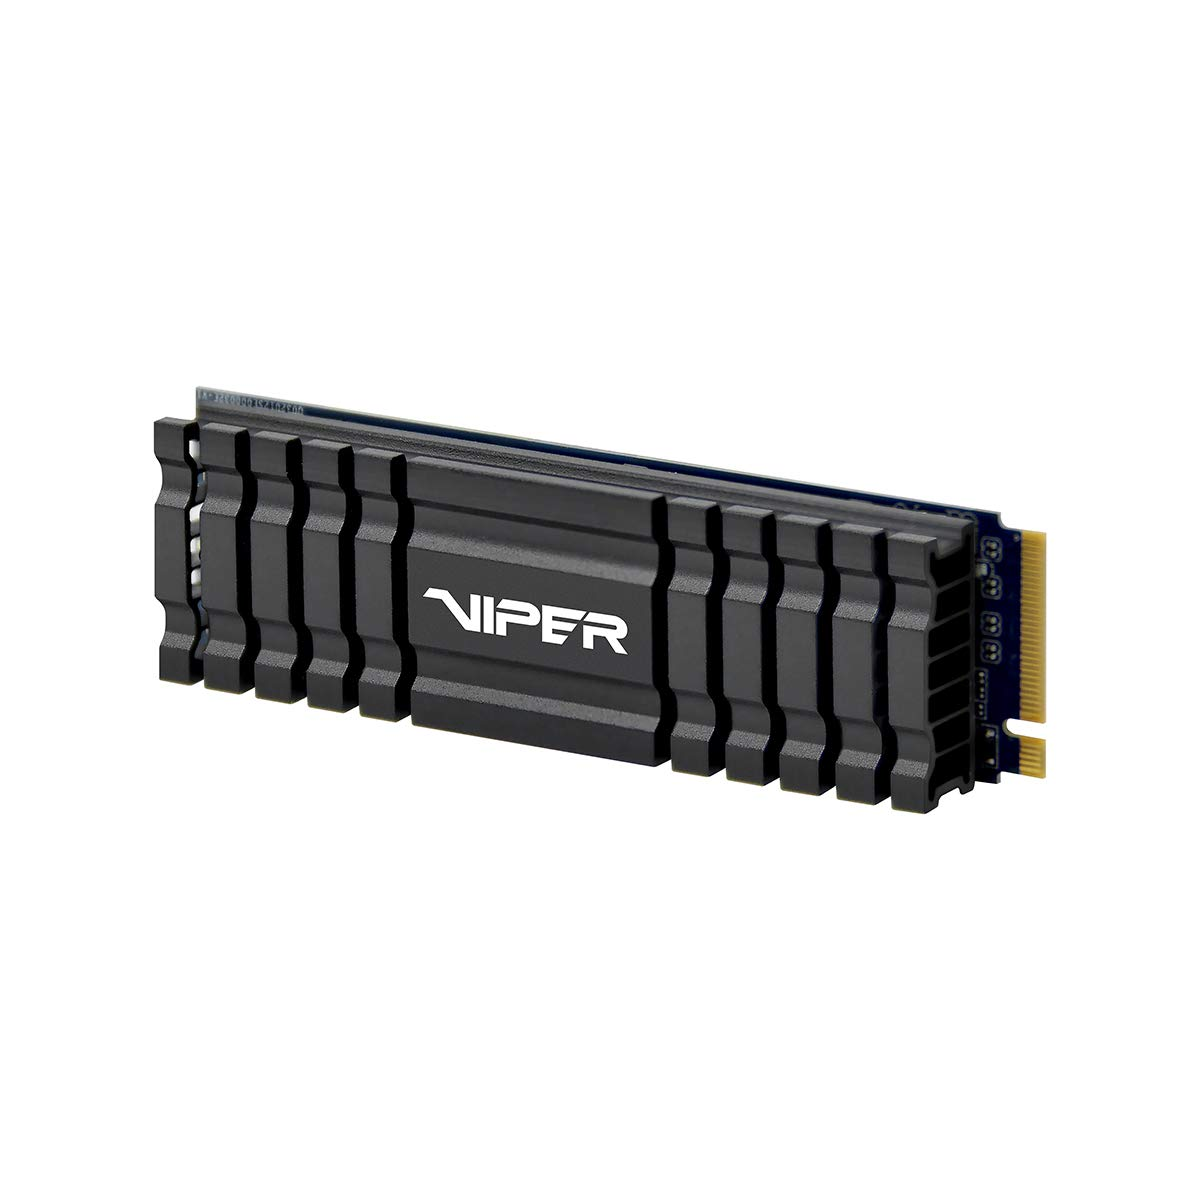 512GB SSD M.2 2280 PATRIOT VIPER VPN100-512GM28H